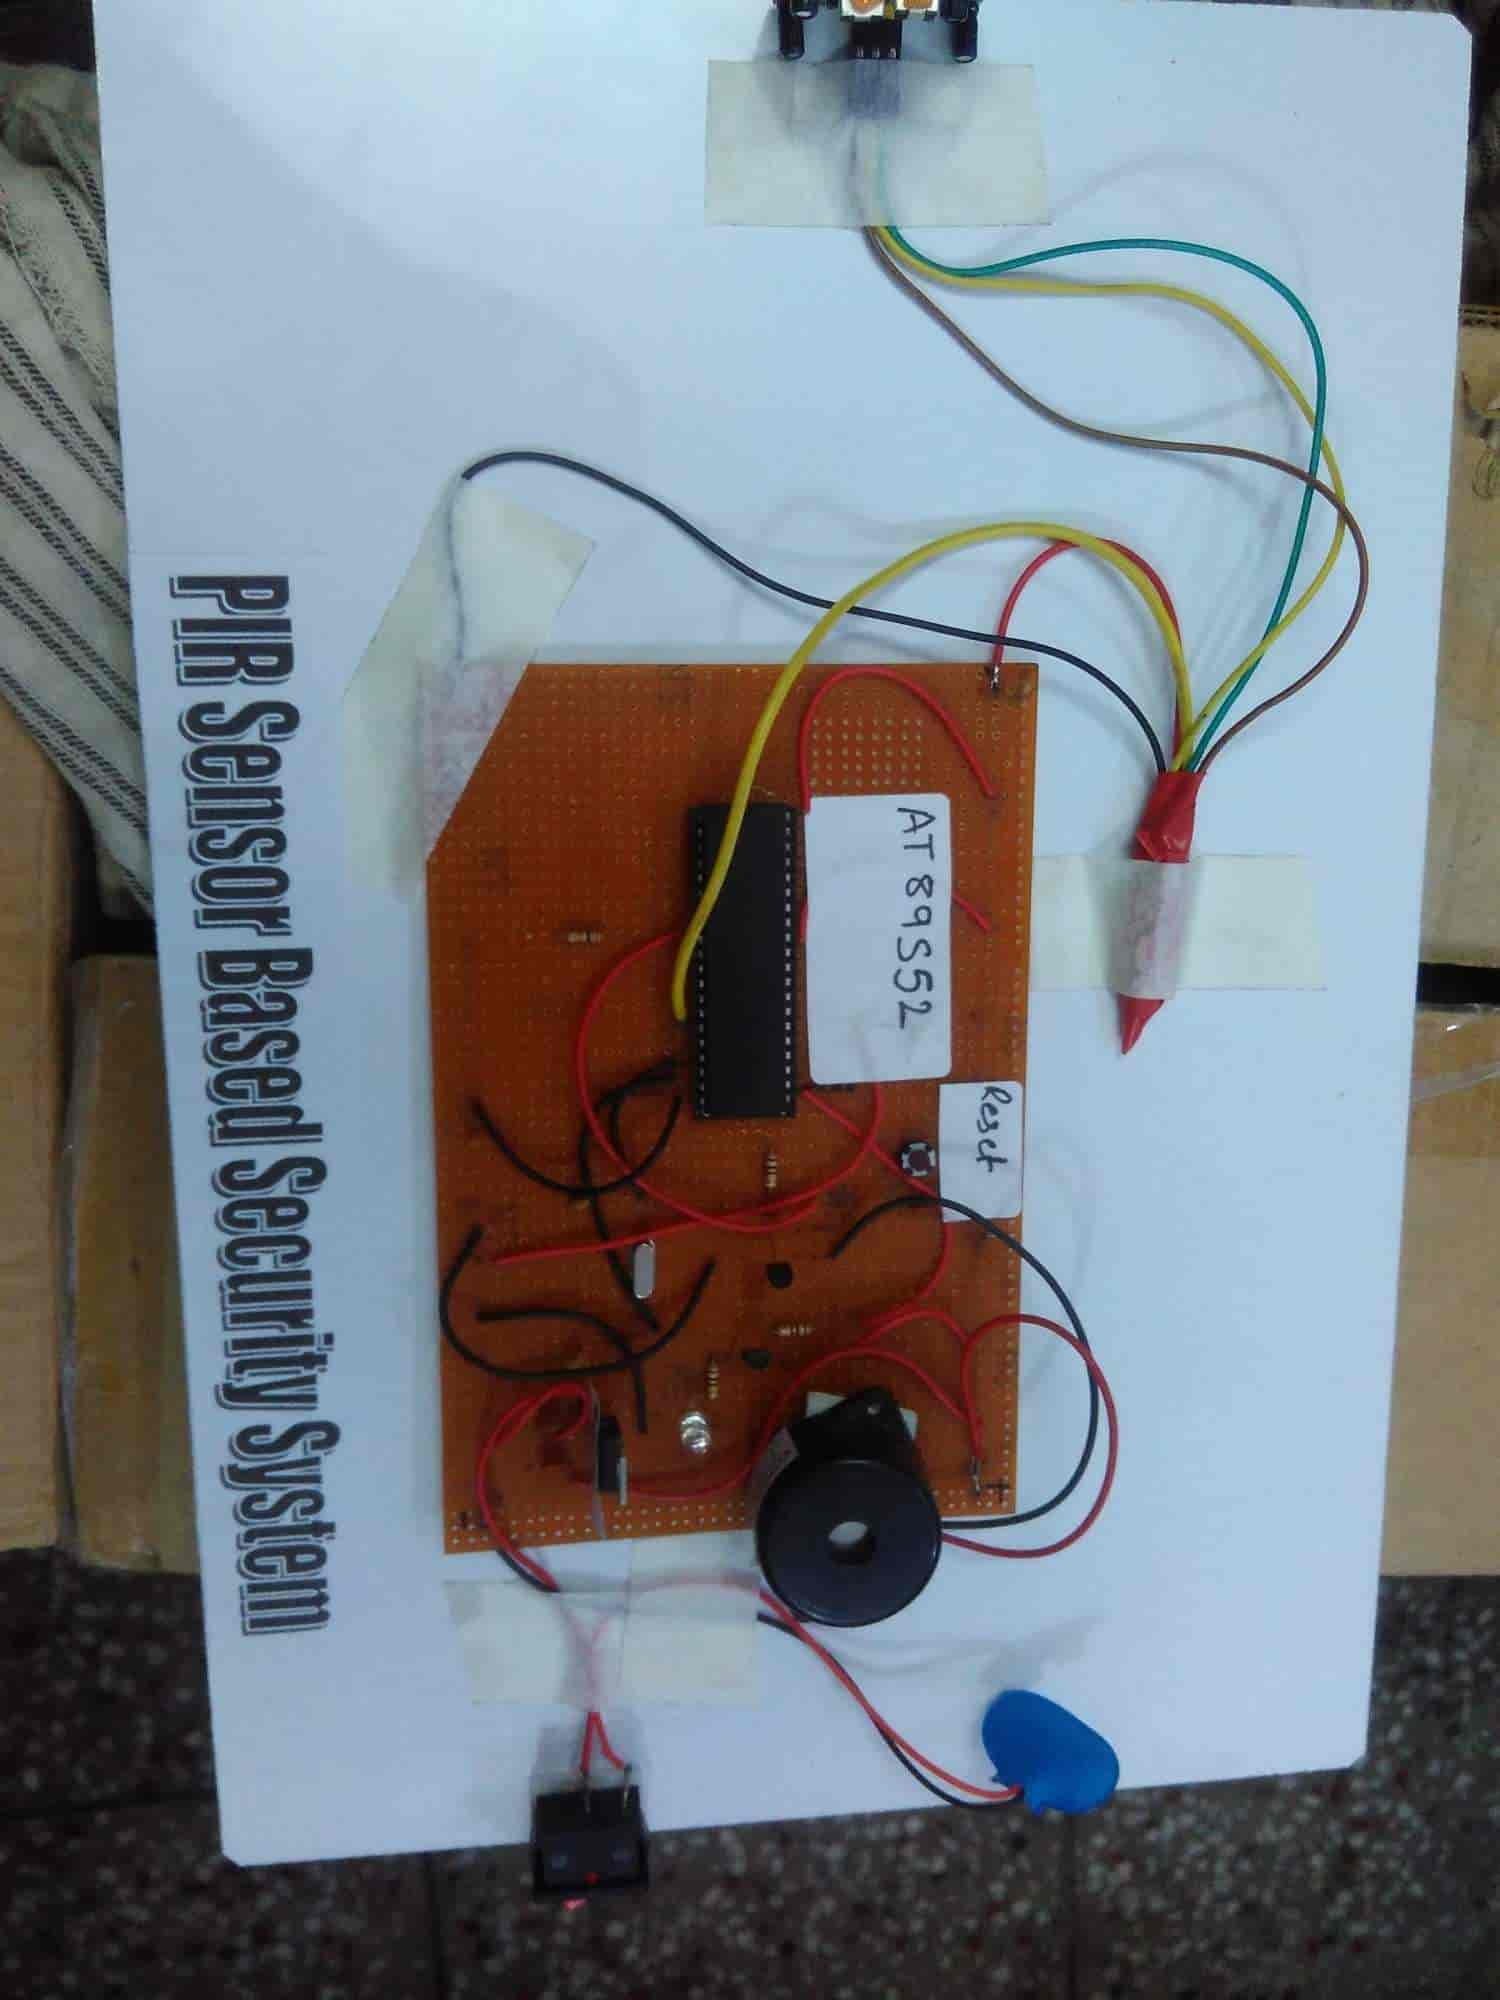 Latest Projects In Electronics And Buy Projects In Electronics And